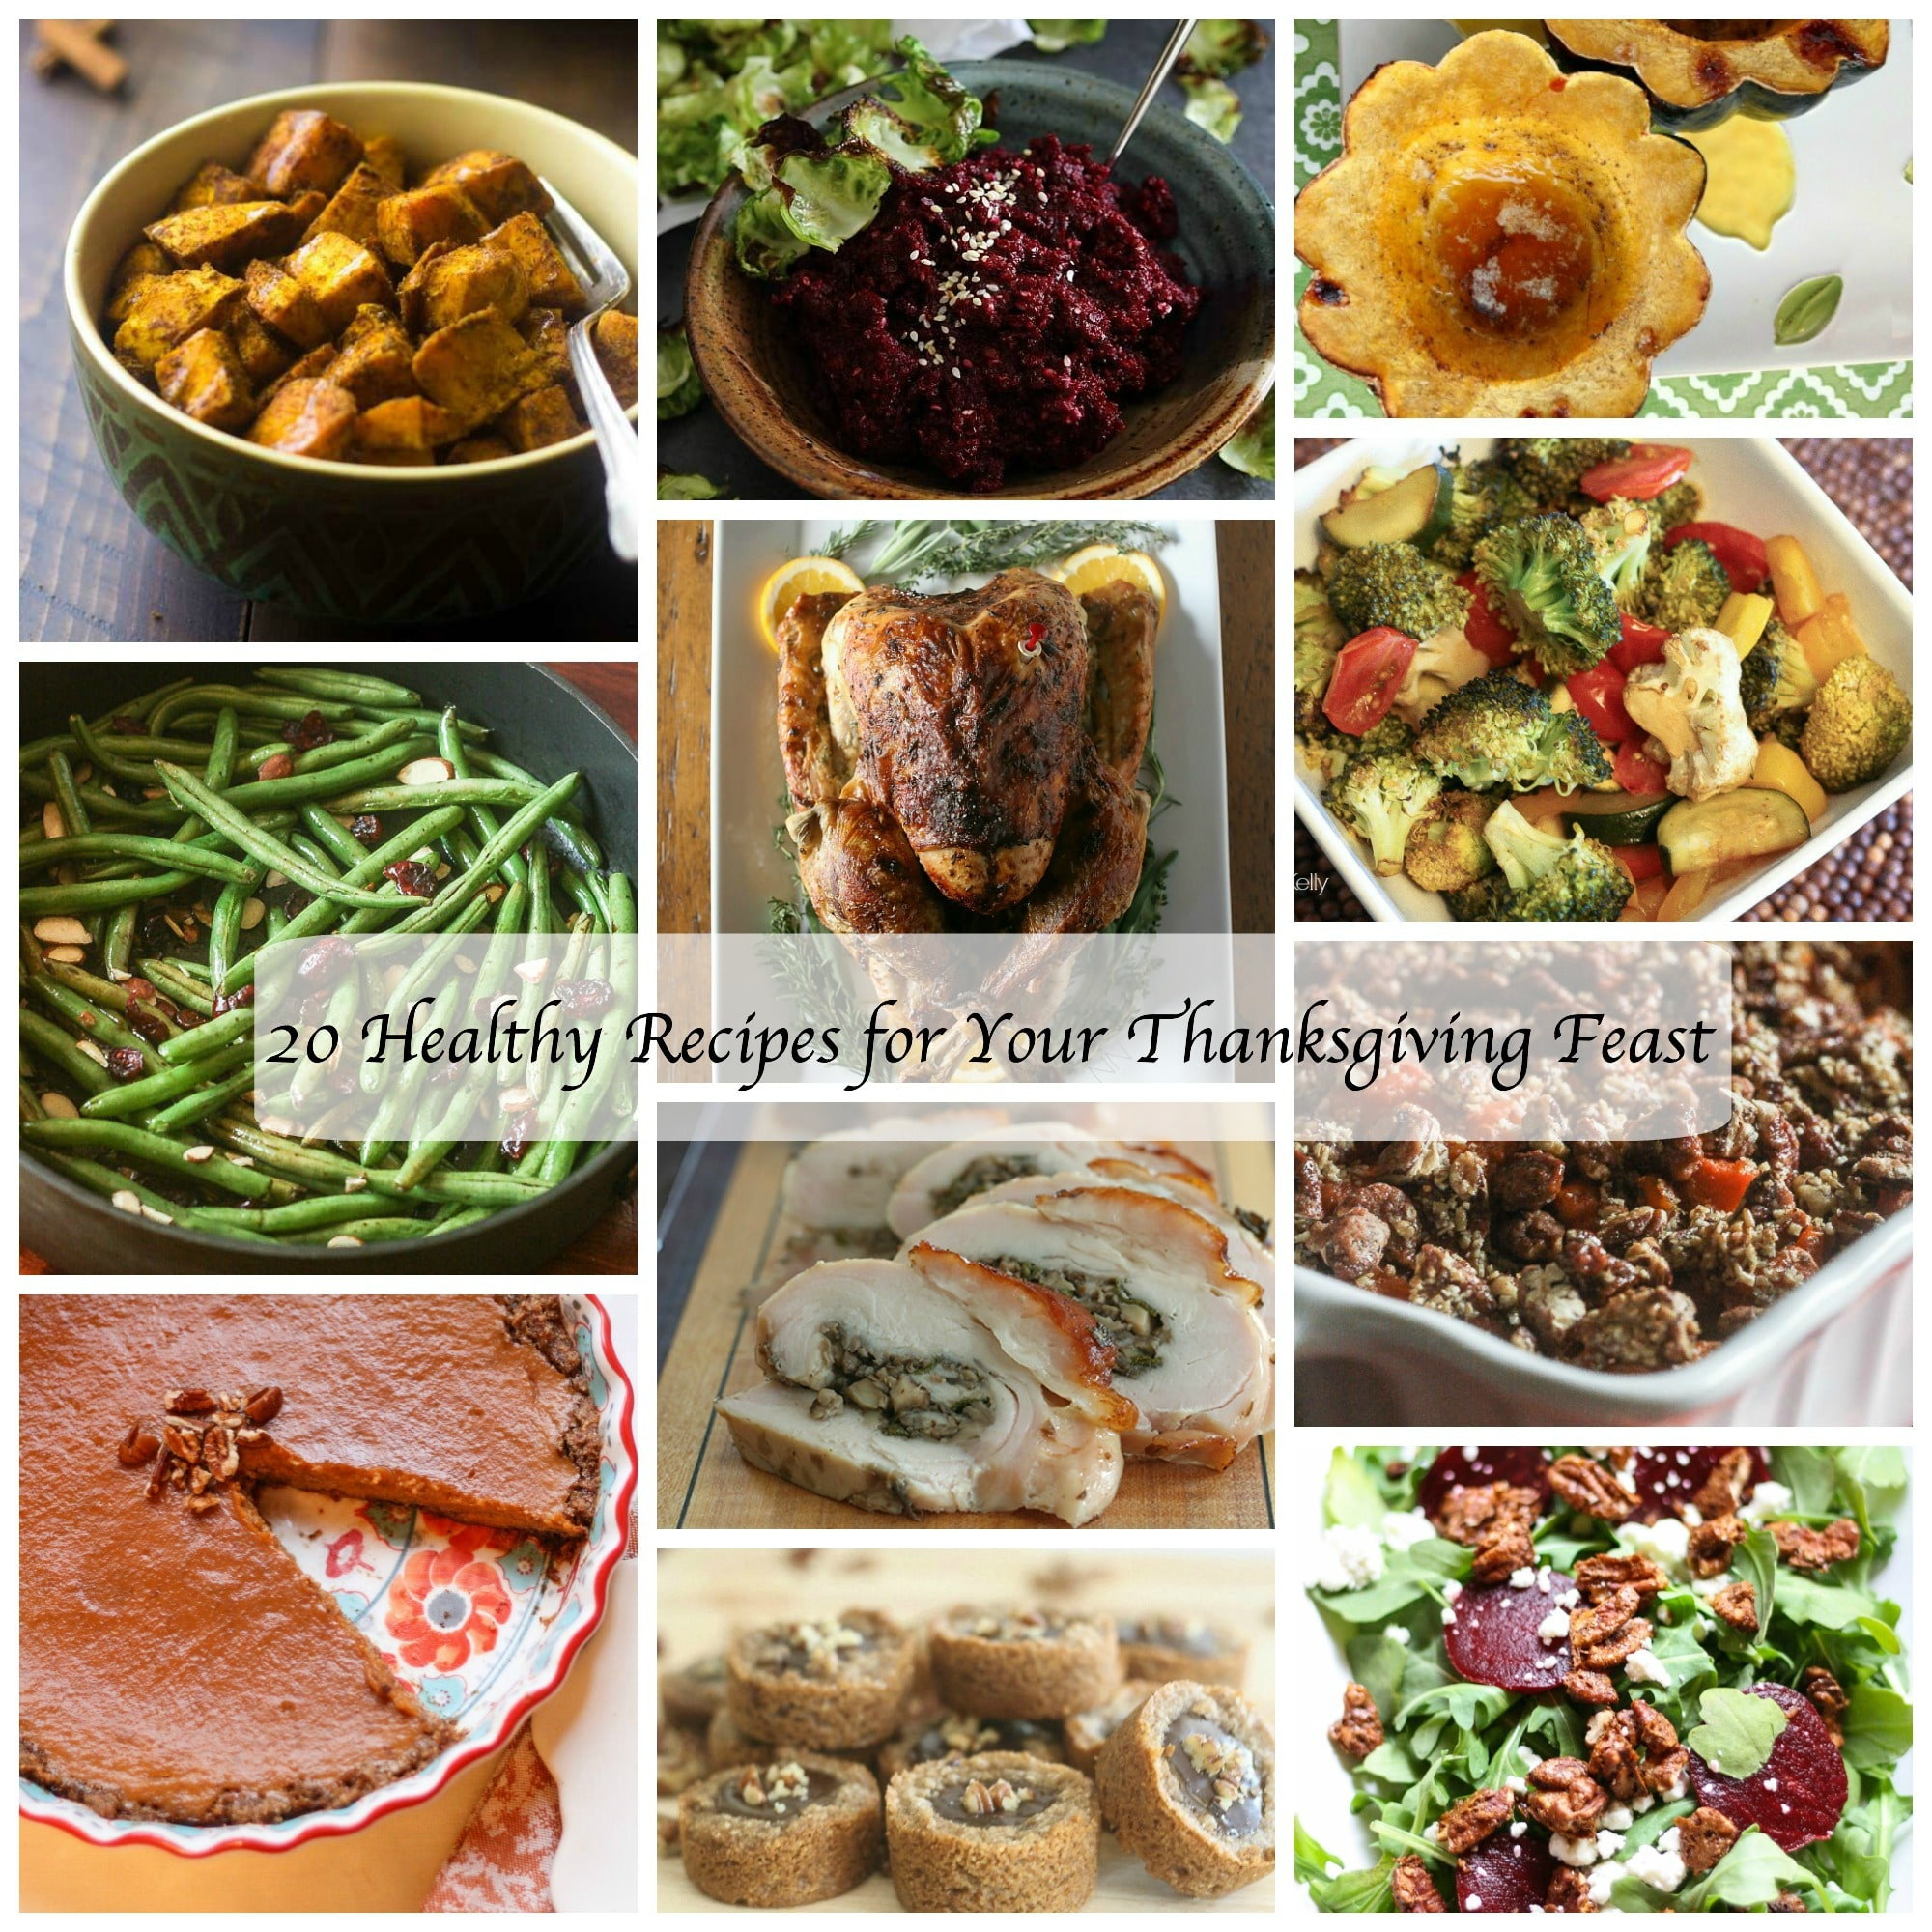 20 Healthy Recipes For Your Thanksgiving Feast